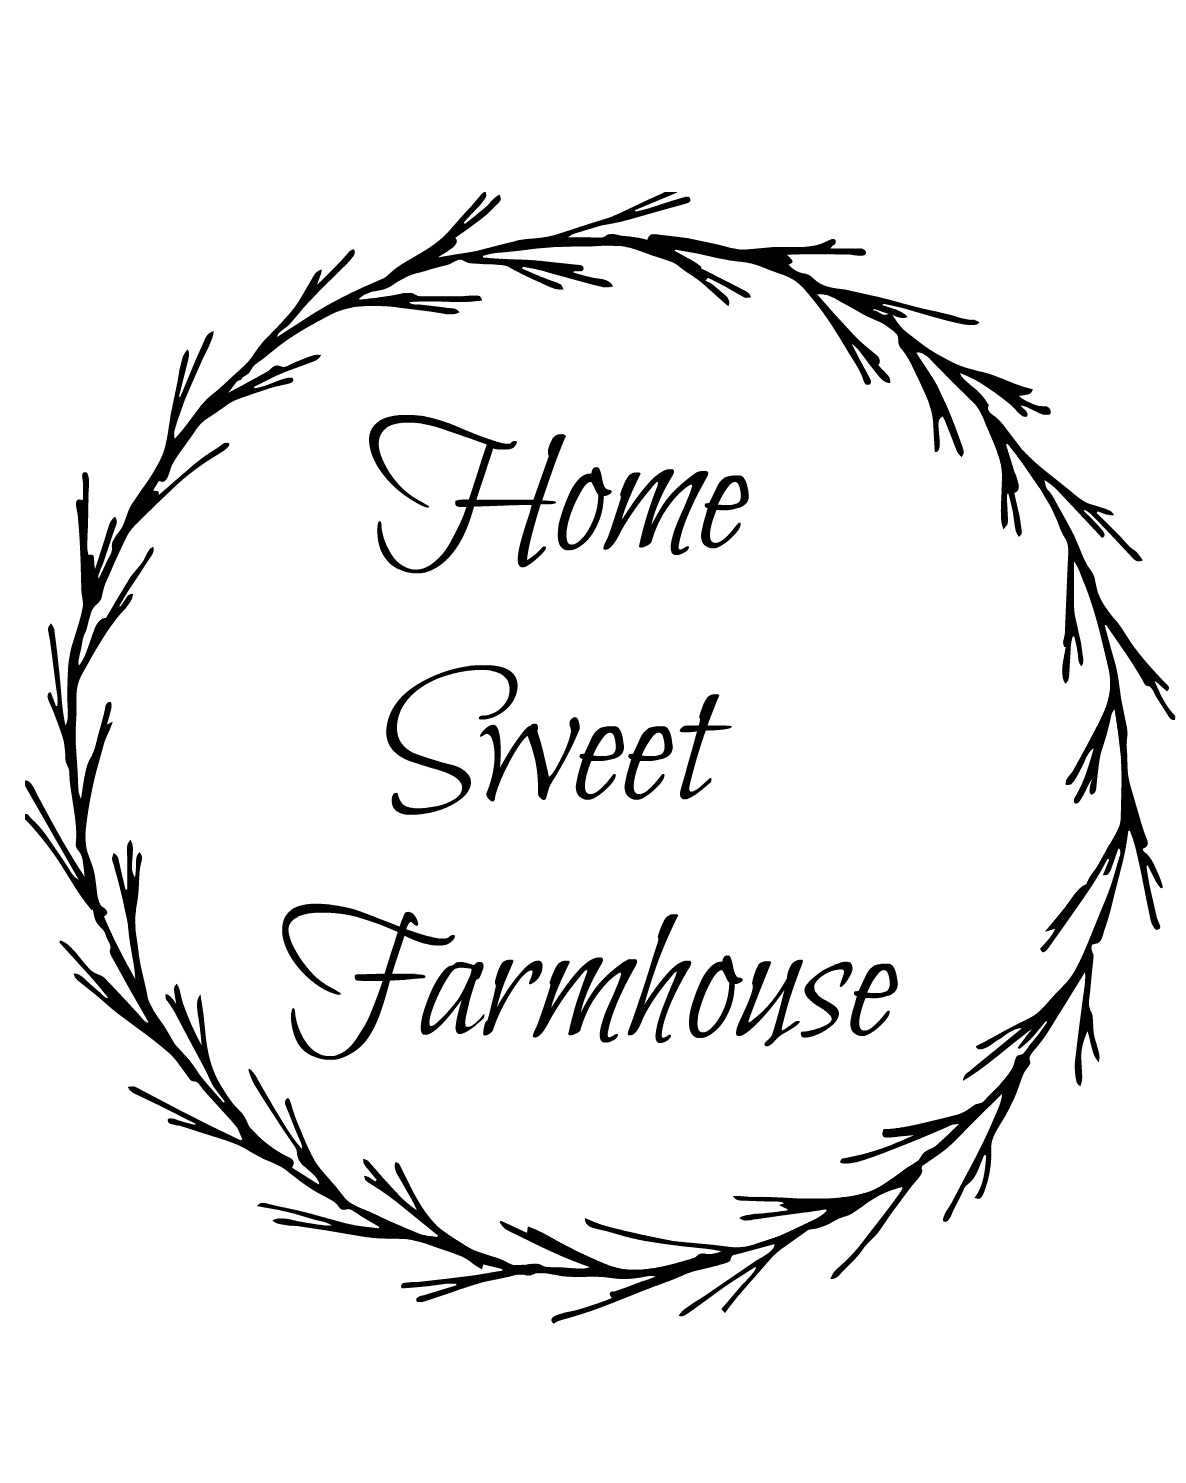 image relating to Farmhouse Printable identified as Frugally Superior Freebie Friday - Residence Adorable Farmhouse